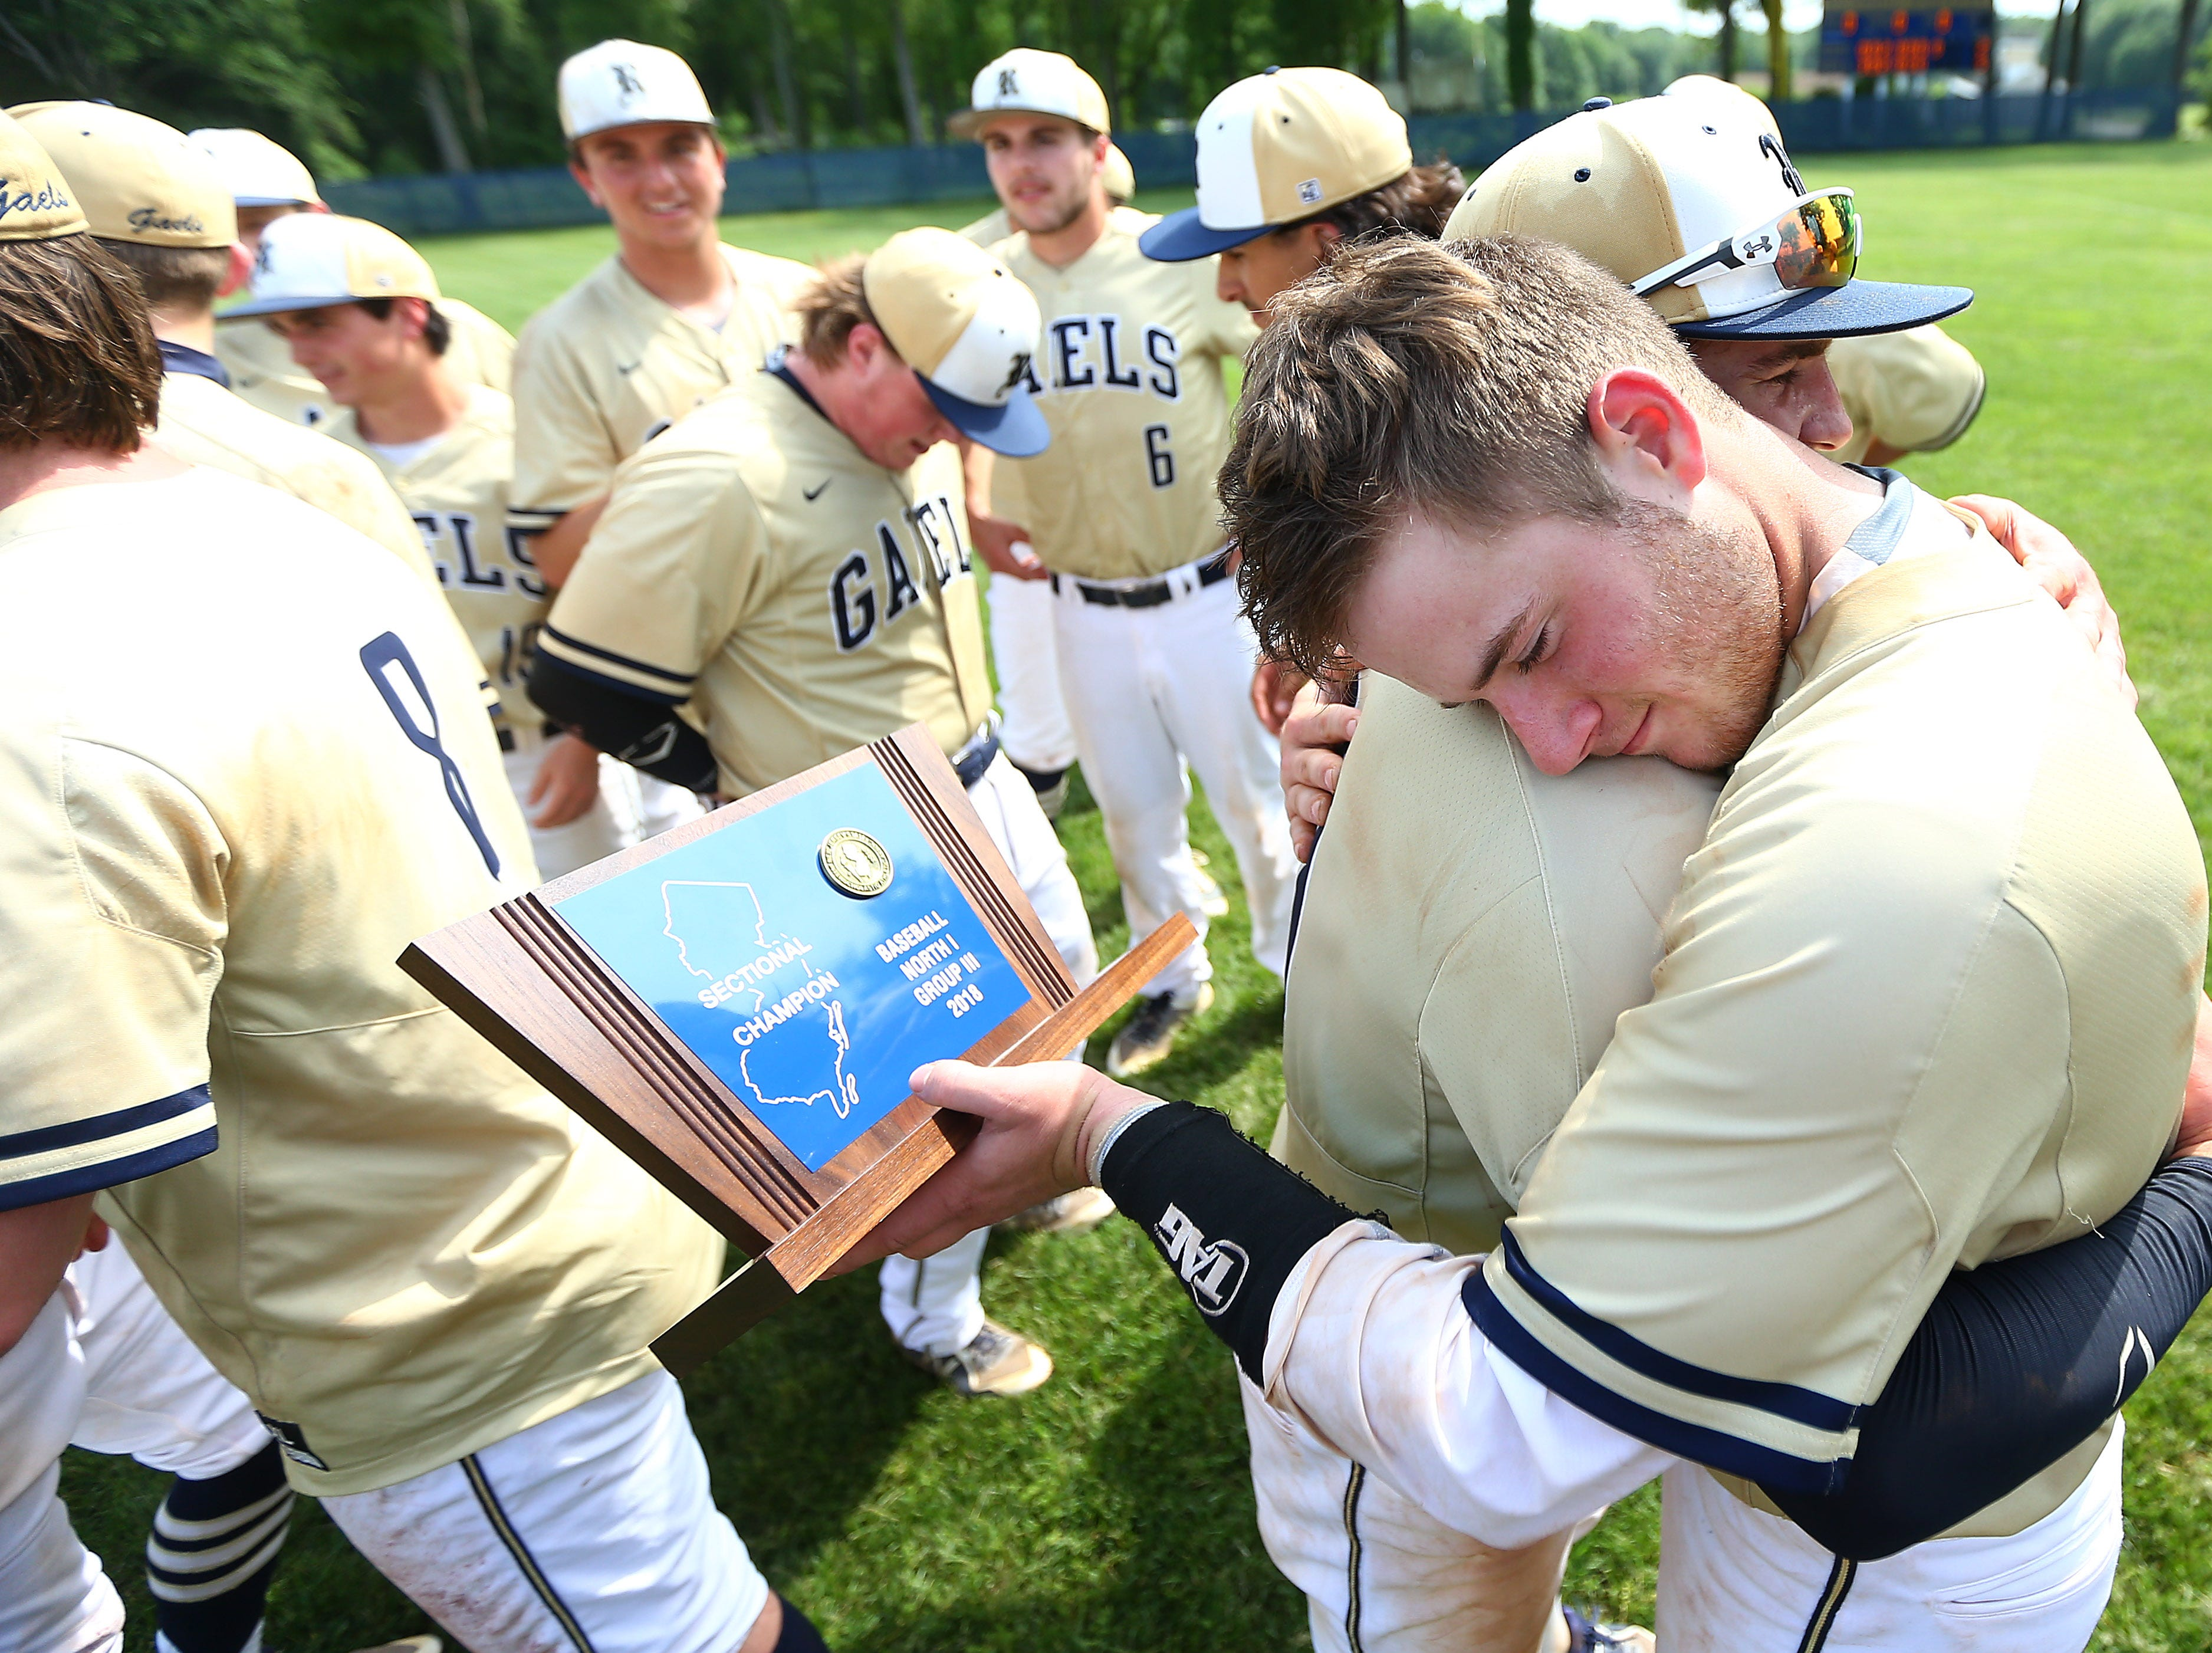 Roxbury's Michael Roumes and Andy Axelson hug with the champions trophy after defeating Pascack Valley in the NJSIAA North 1 Group III baseball final. June 1, 2018. Roxbury, NJ